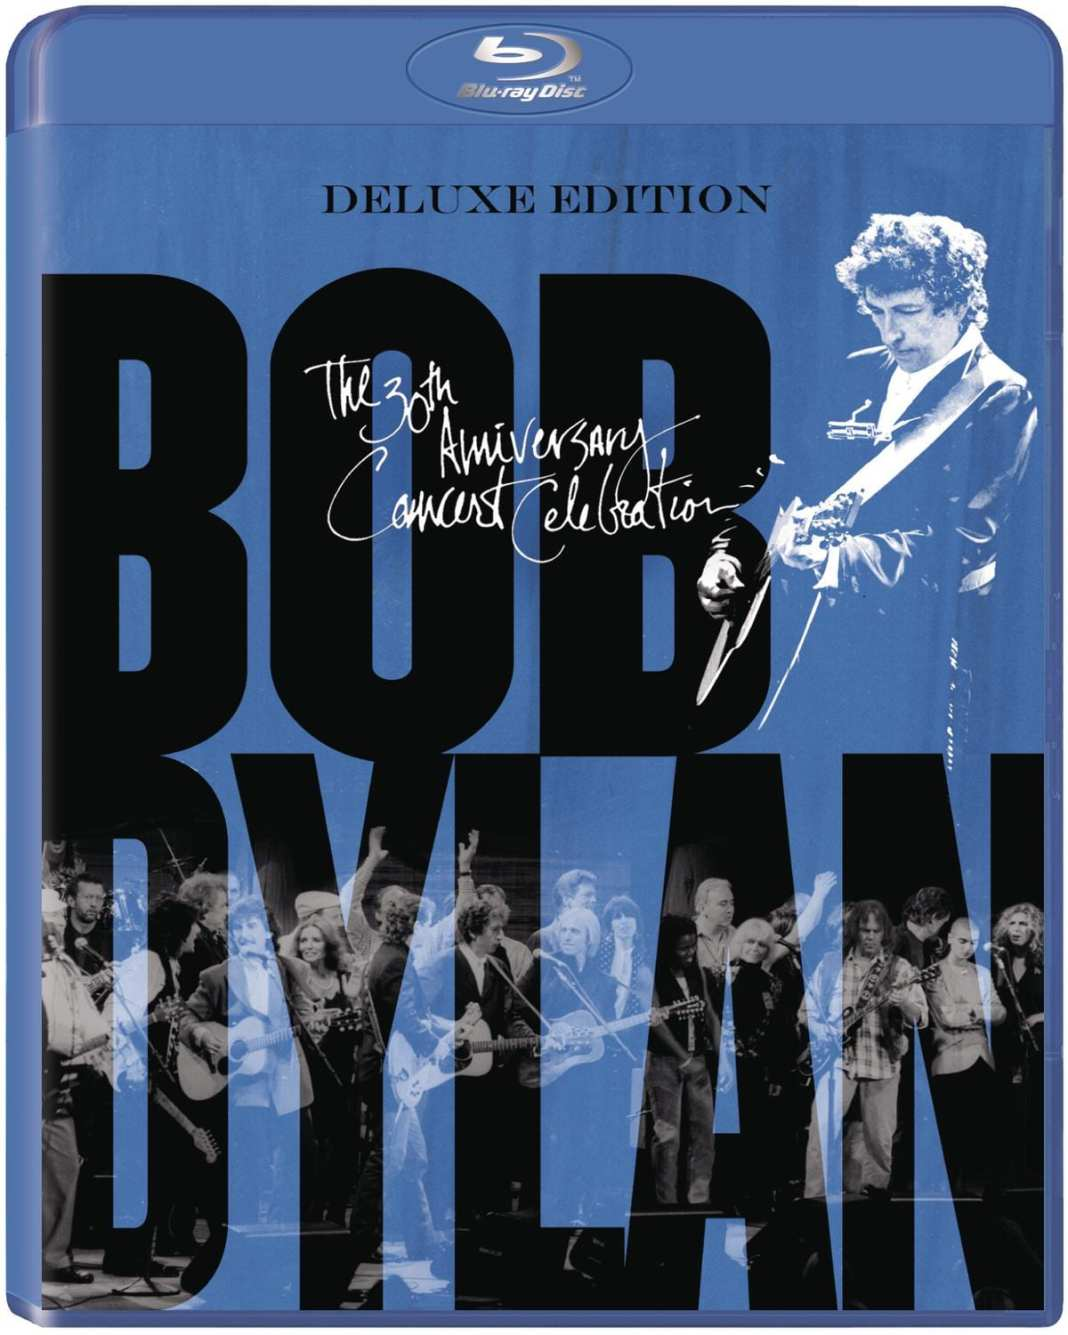 Bob Dylan - The 30th Anniversary Concert Celebration Deluxe Edition - Artwork